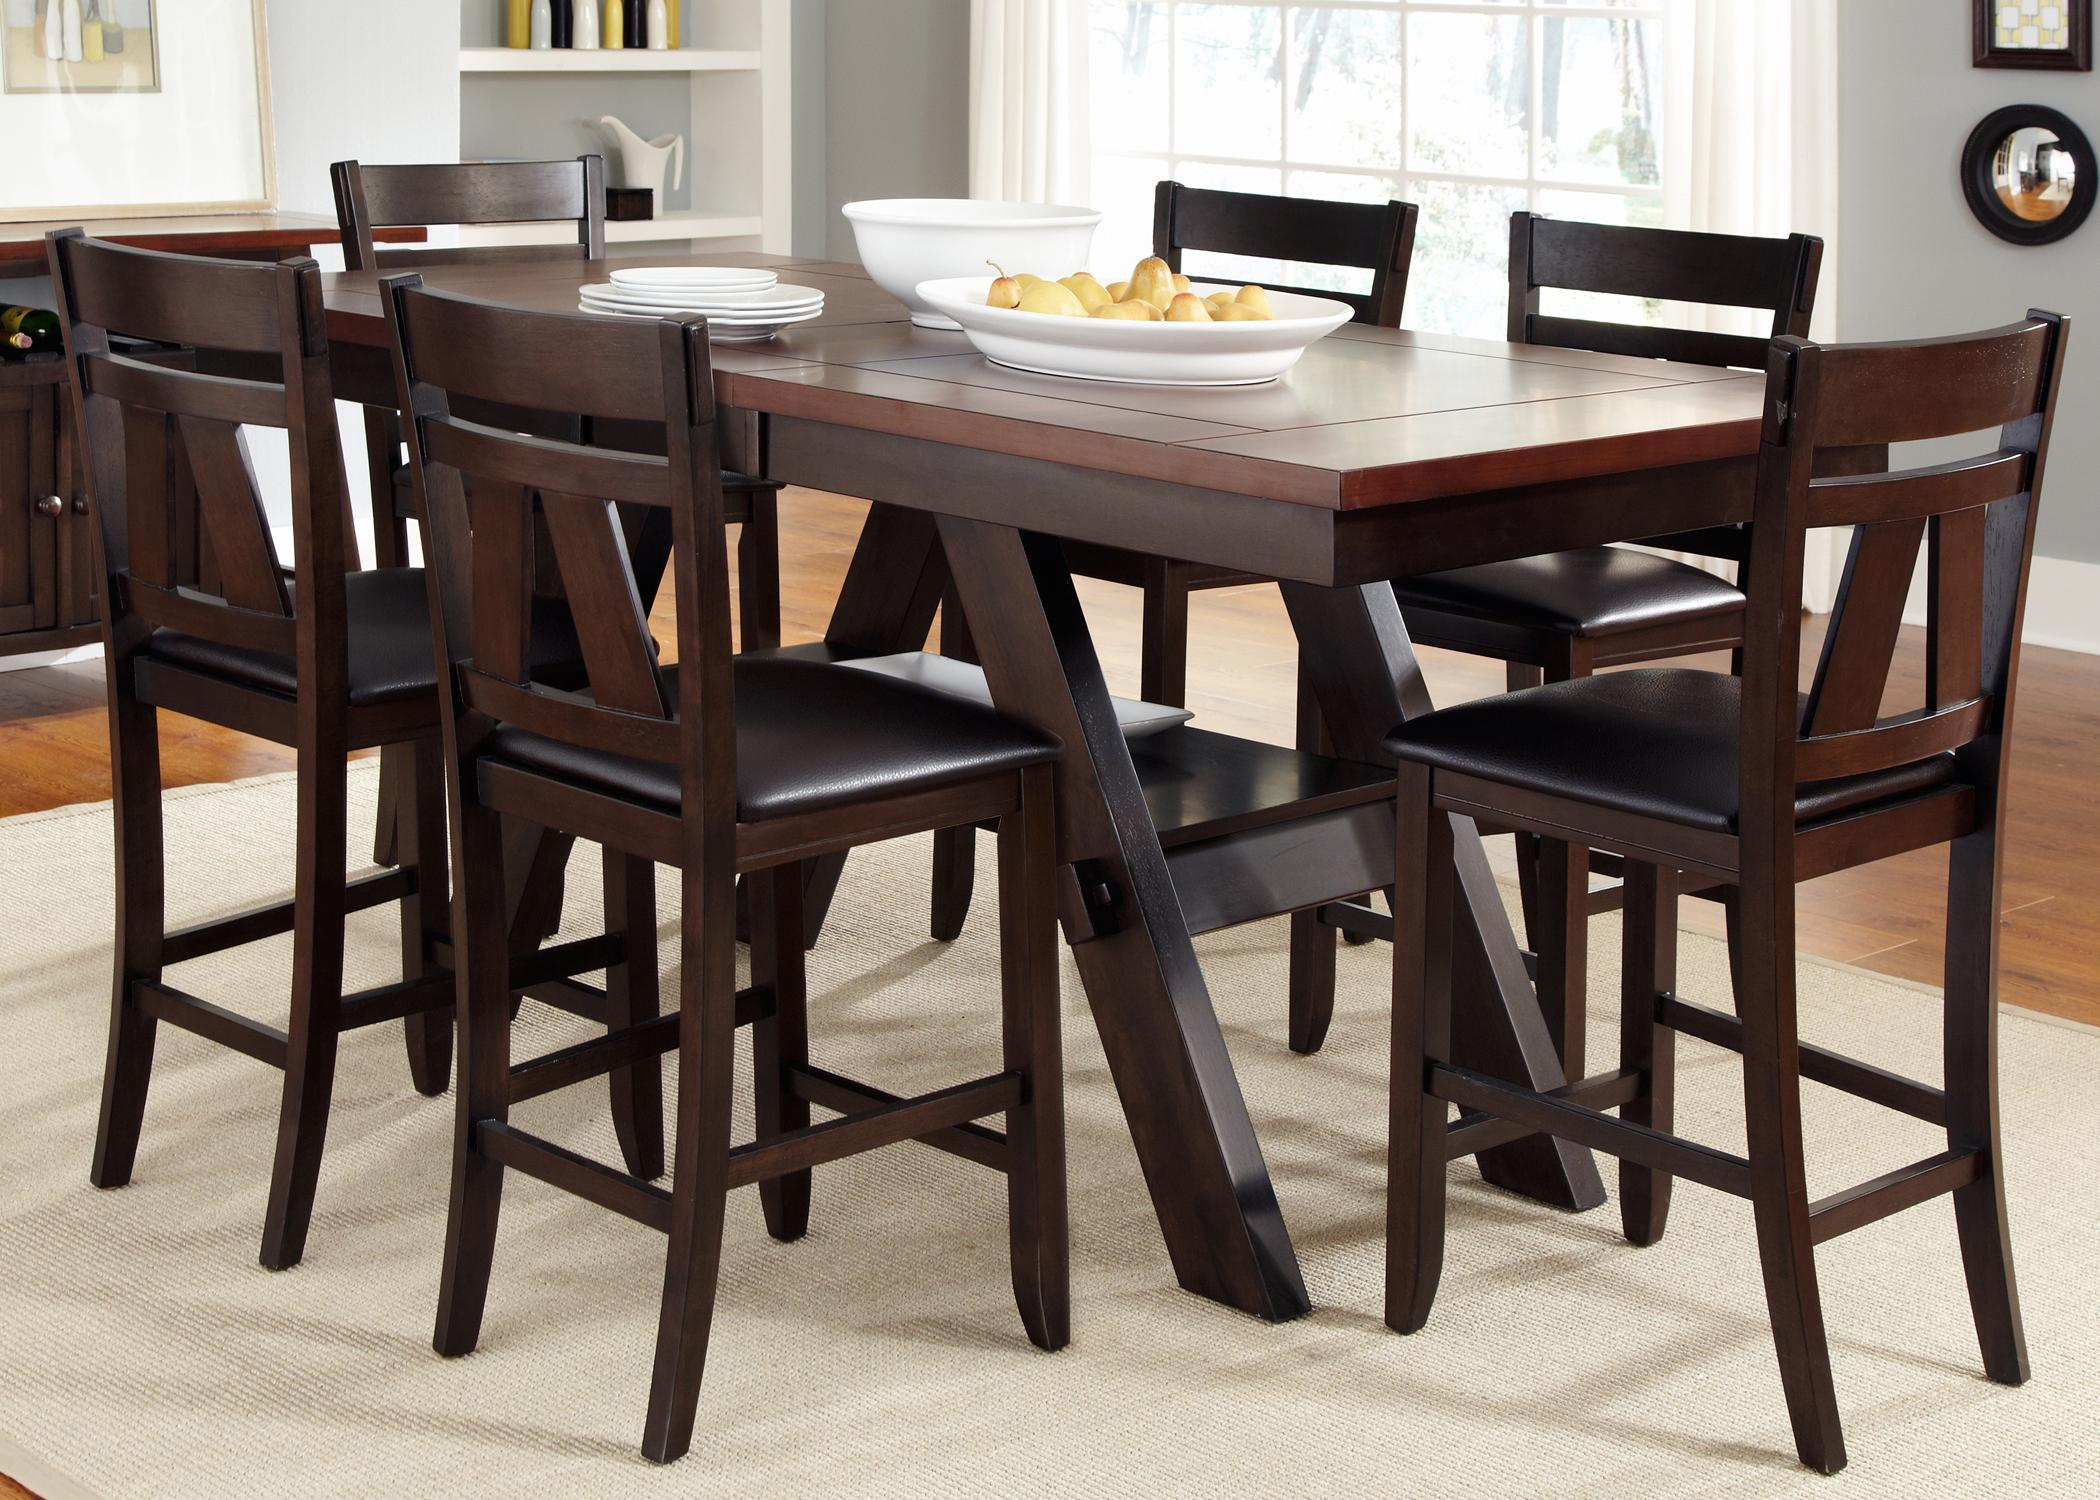 Gathering Table With Counter Height Chairs